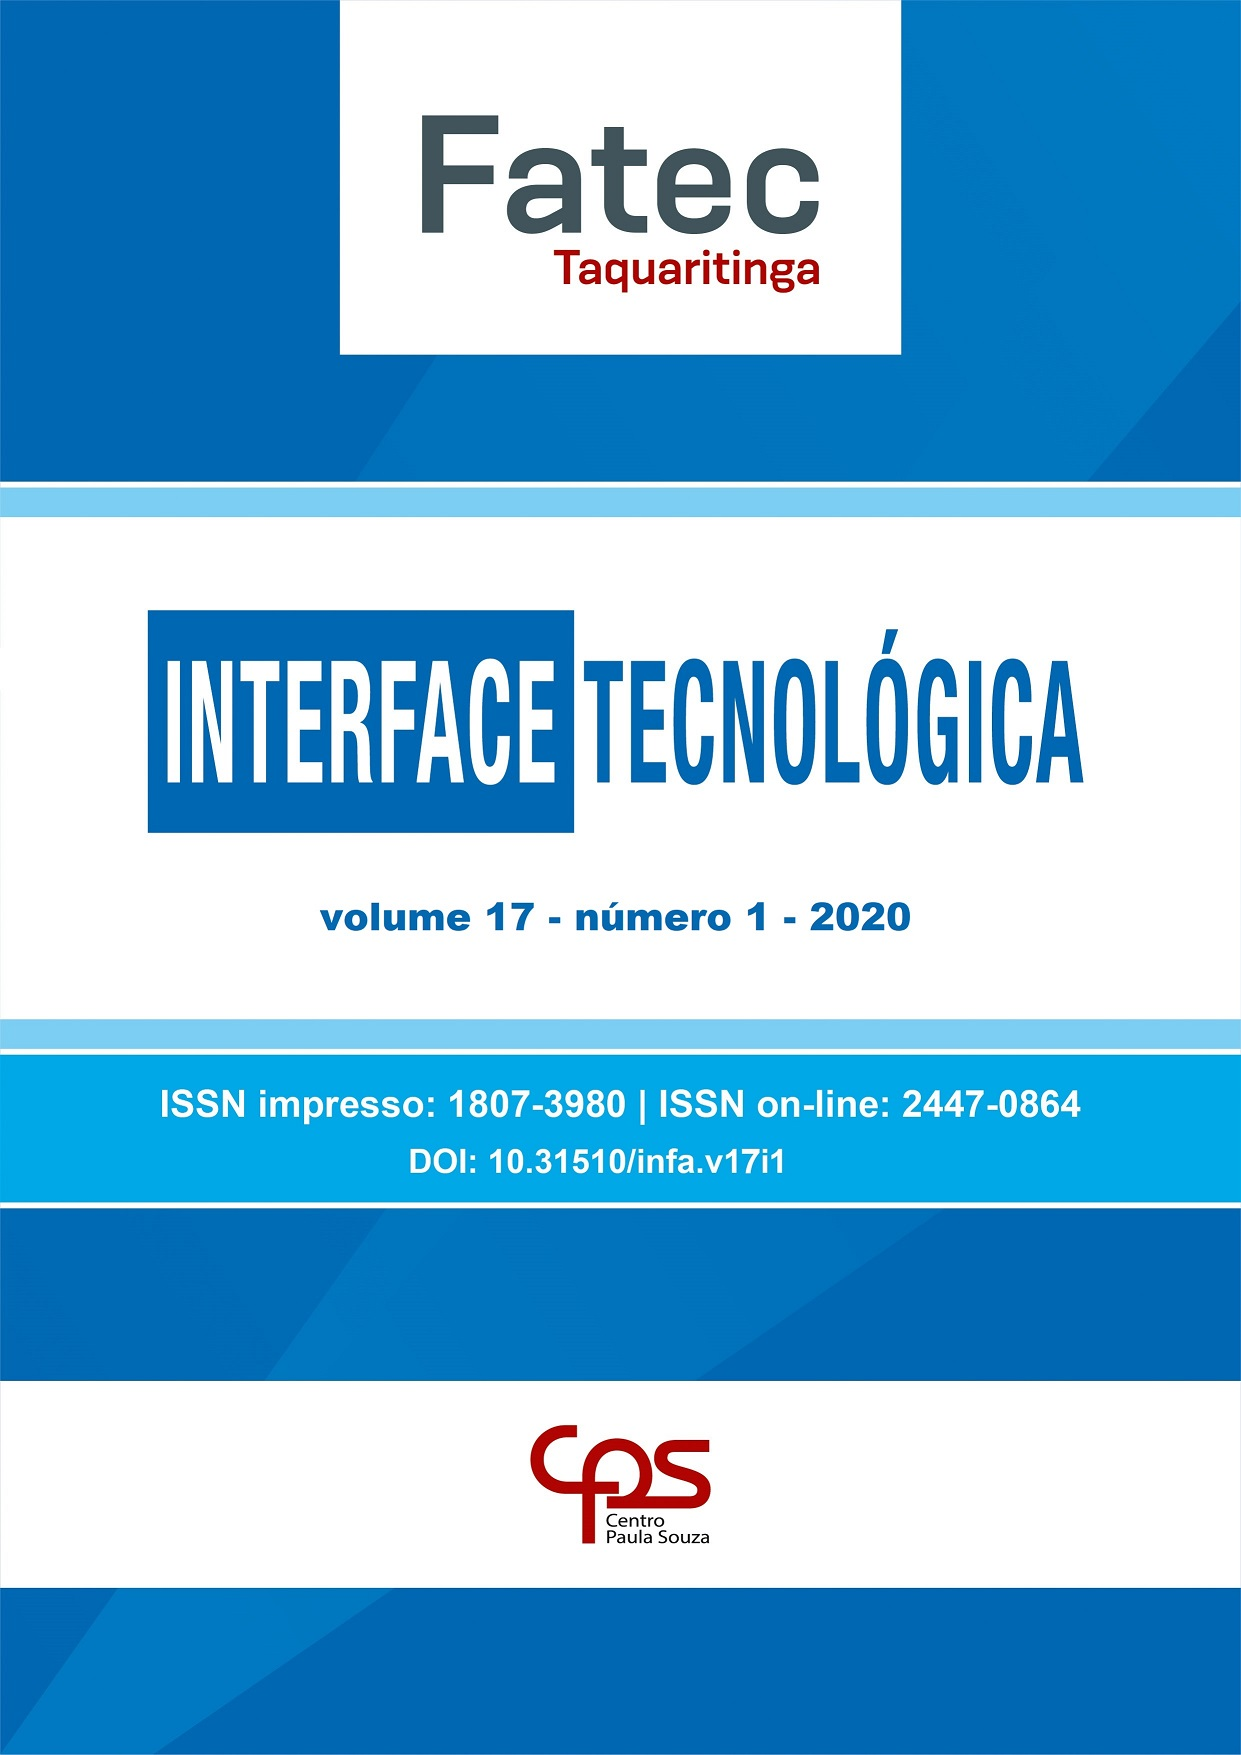 Visualizar v. 17 n. 1 (2020): Revista Interface Tecnológica